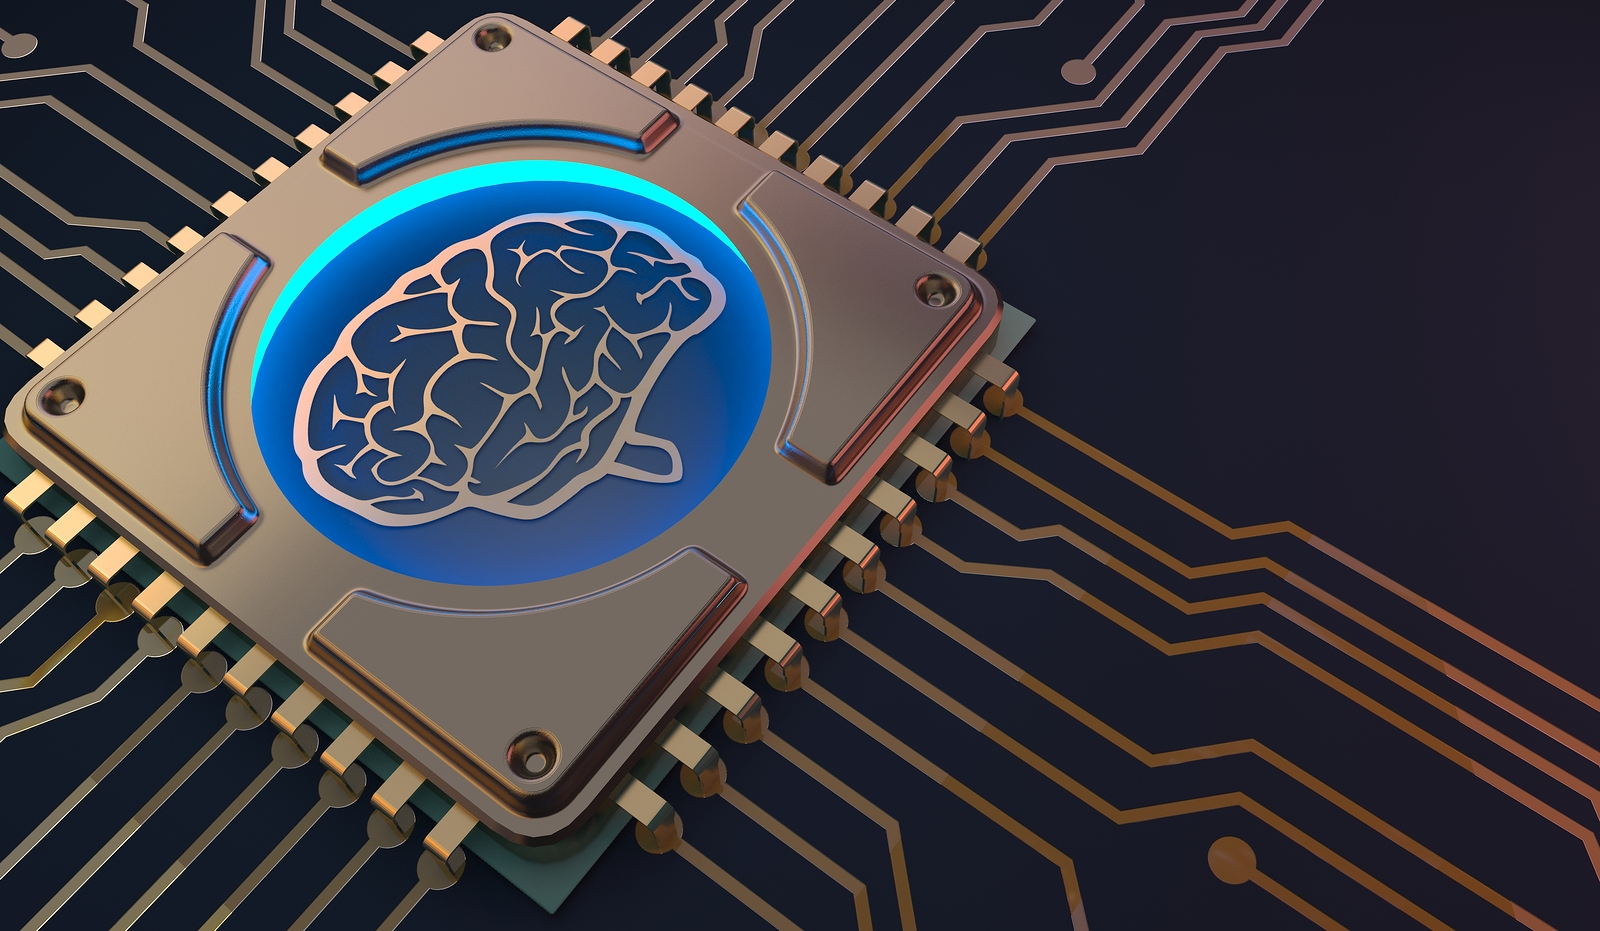 Learn with Google AI aims to help people understand machine learning potential to solve complicated problems. - Photo:Bigstock.com